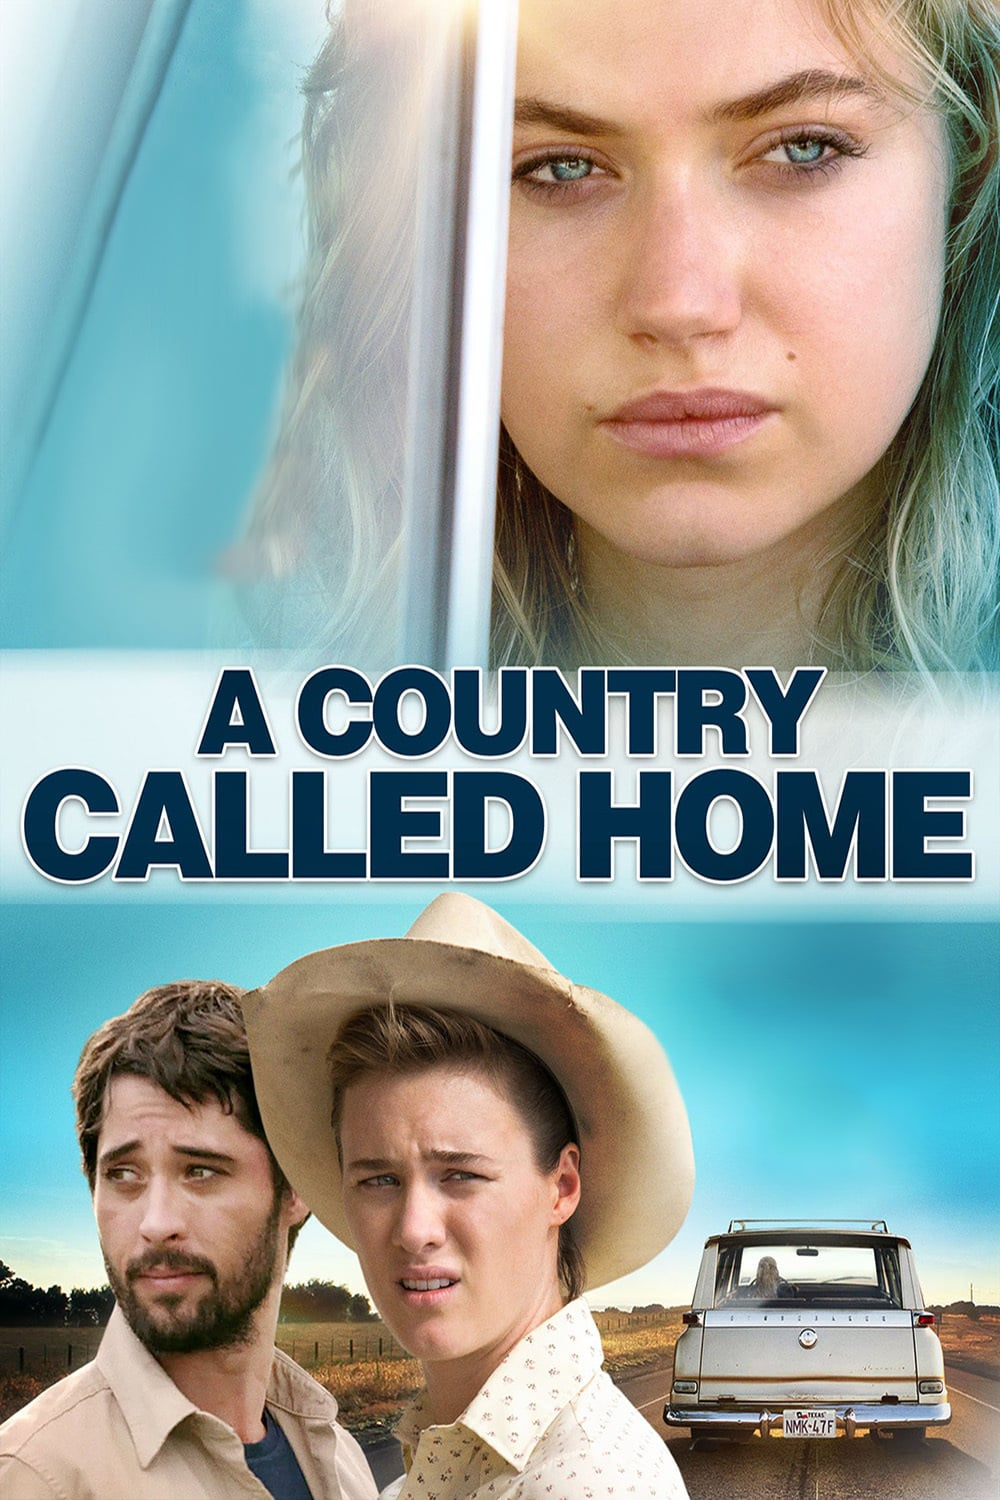 A Country Called Home kapak